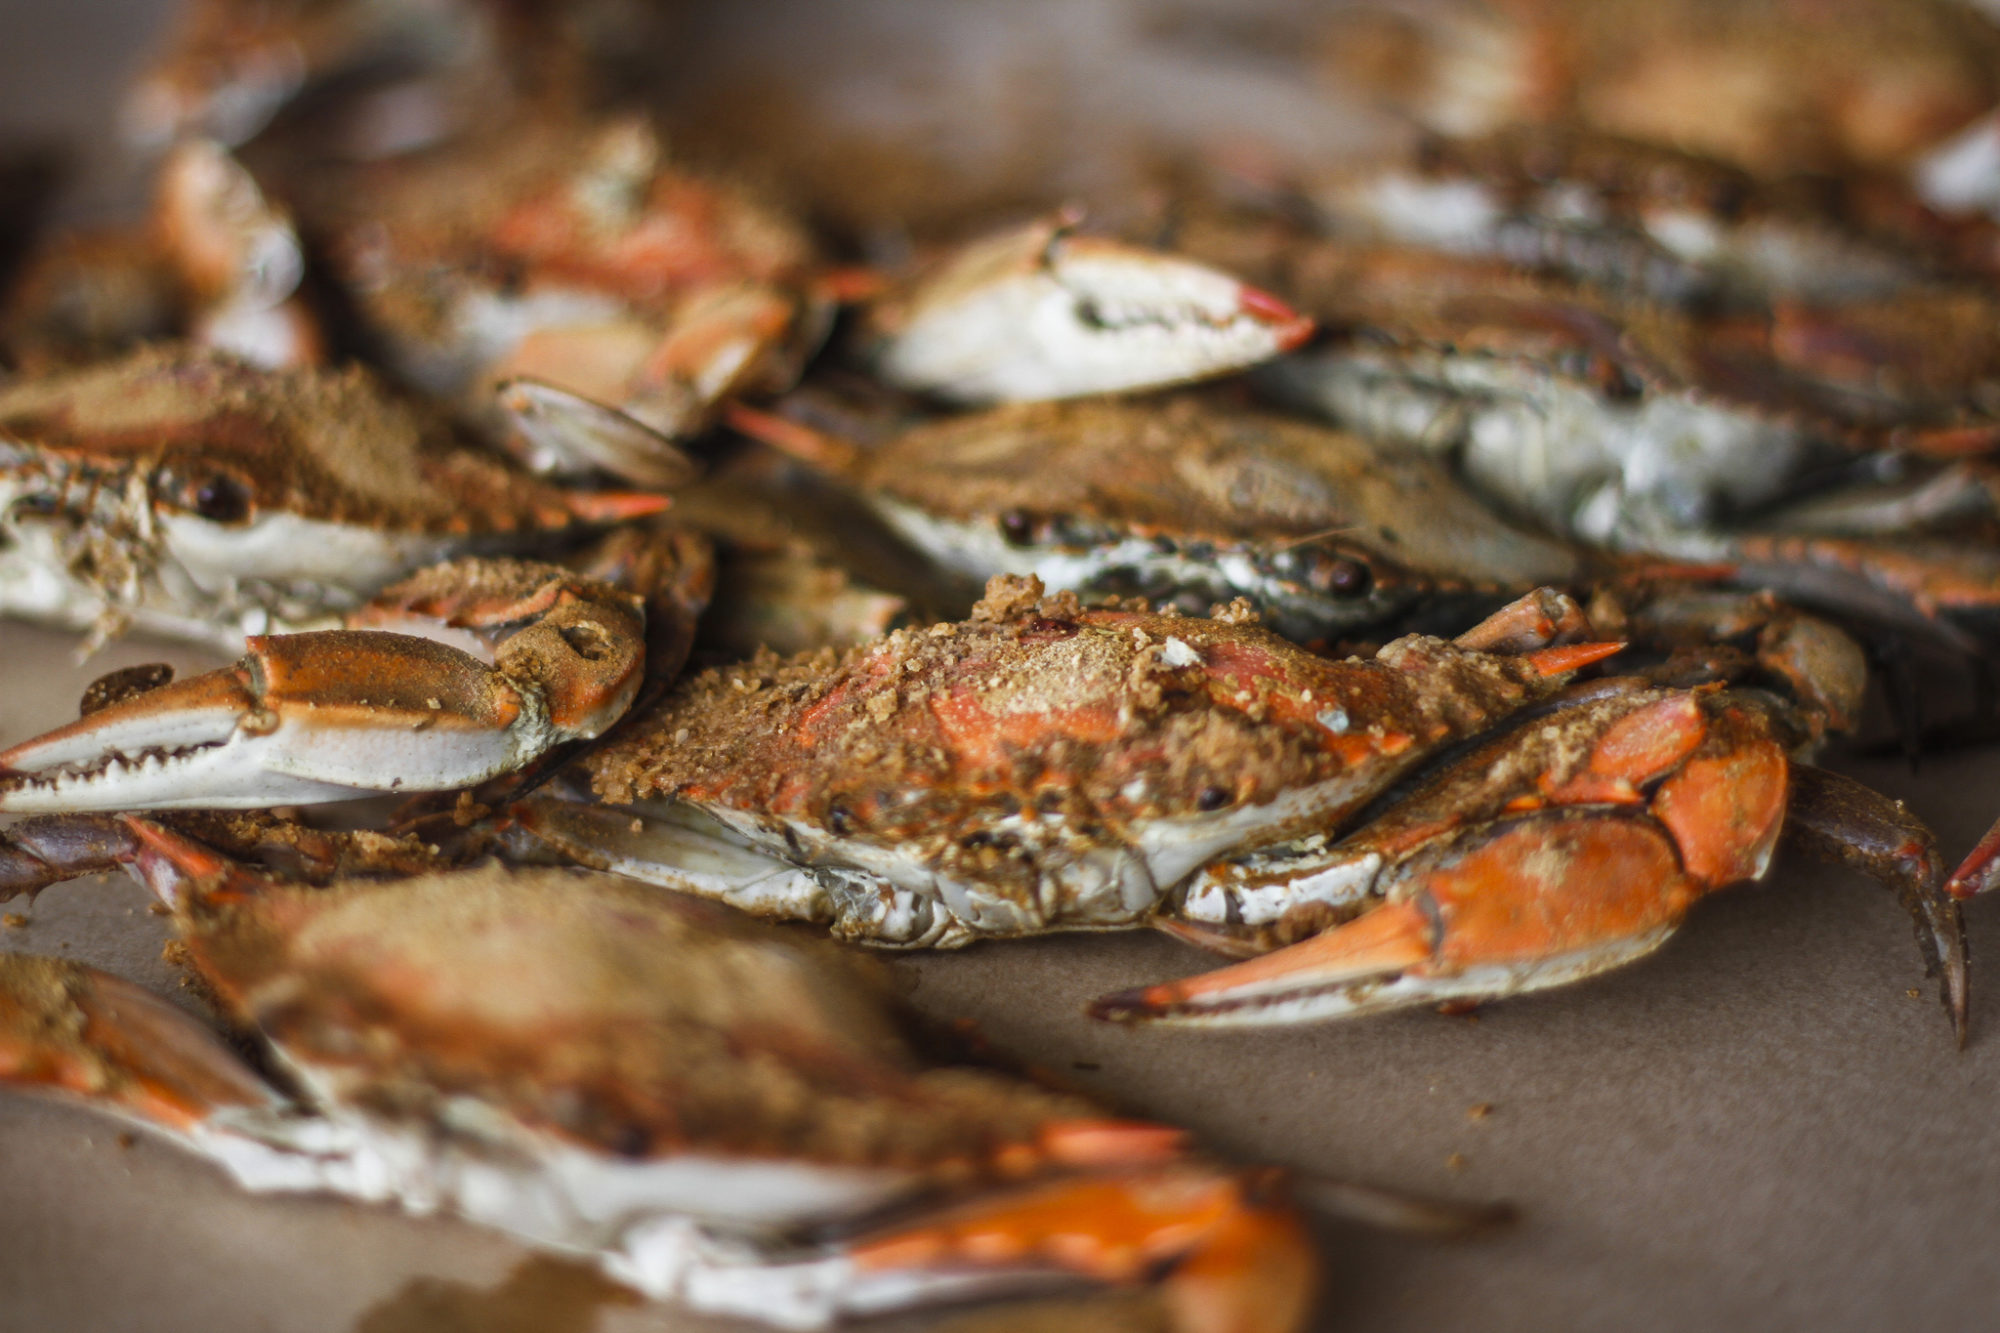 maryland crab by Pulaw via Flickr